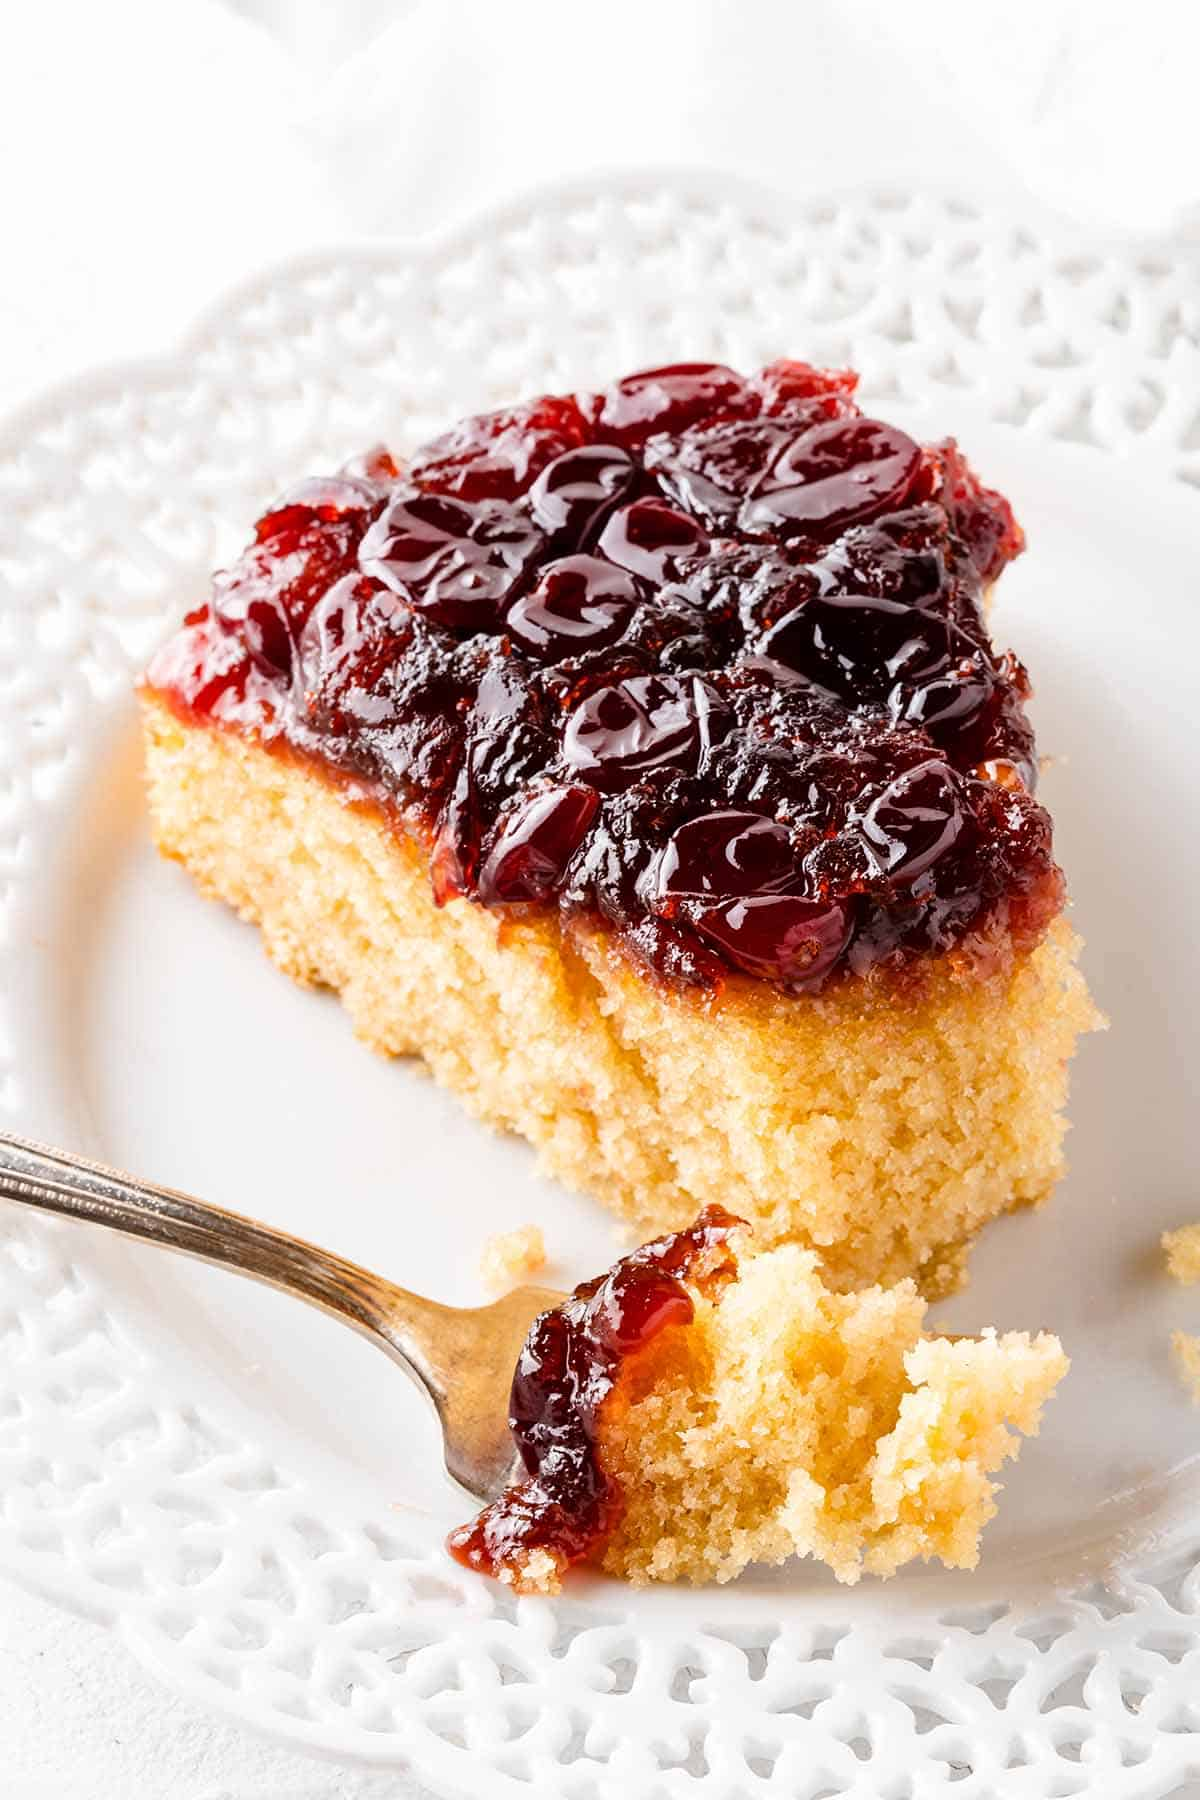 Slice of Cranberry Upside Down Cake with fork on white plate